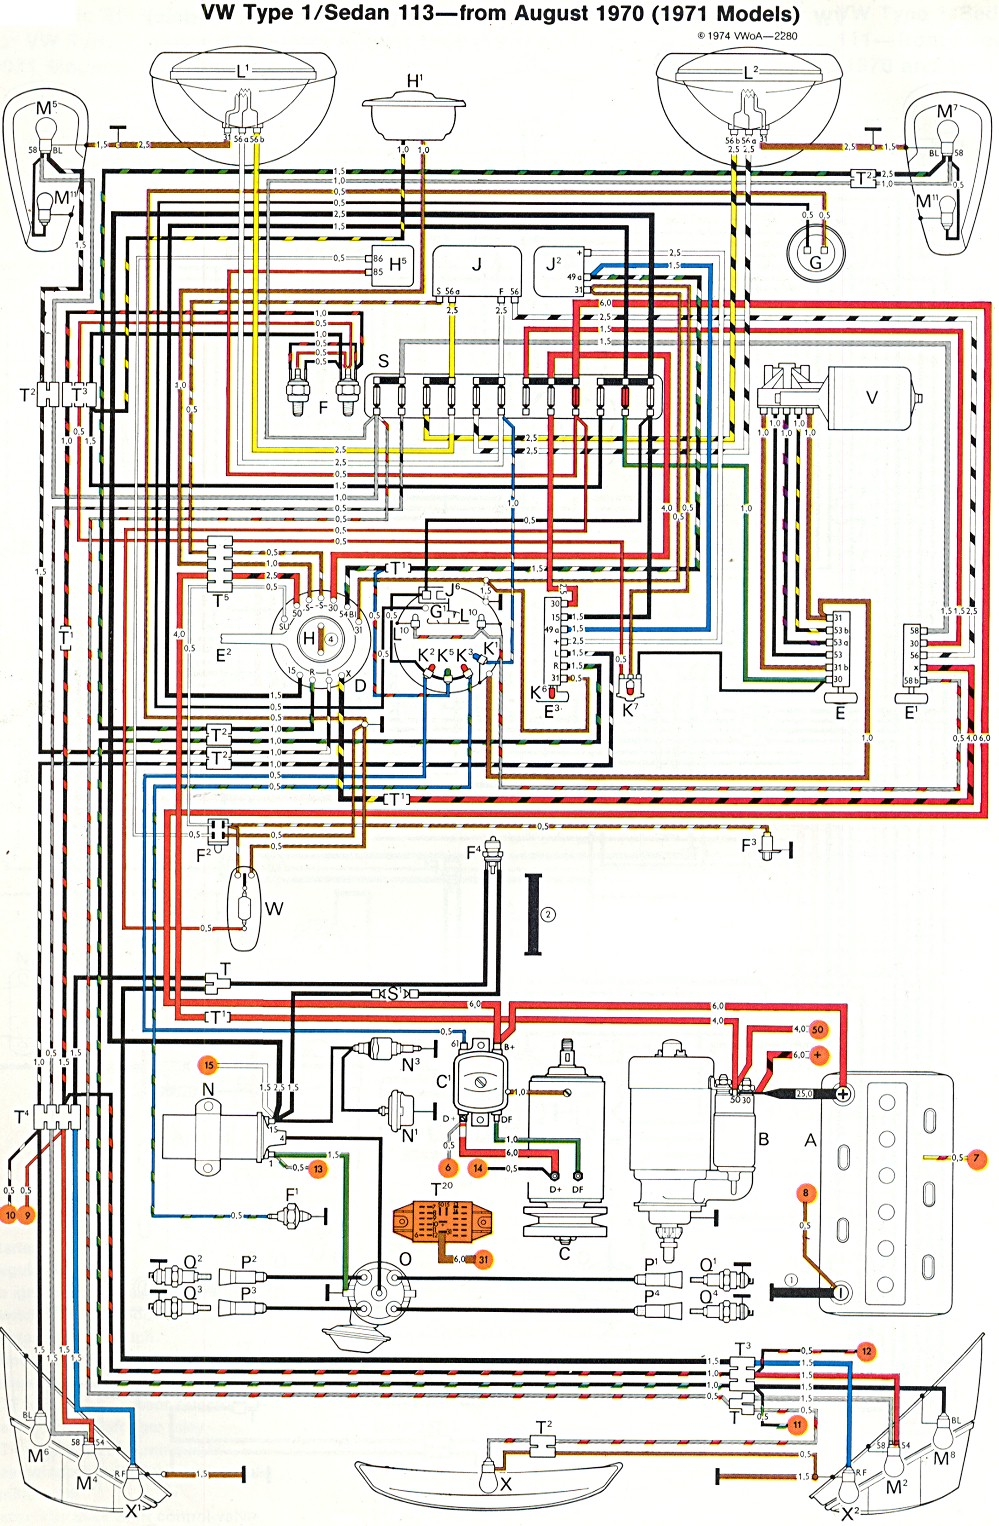 medium resolution of wiring diagram for 1974 vw super beetle wiring diagram expert 1974 vw beetle alternator wiring diagram 74 vw beetle wiring